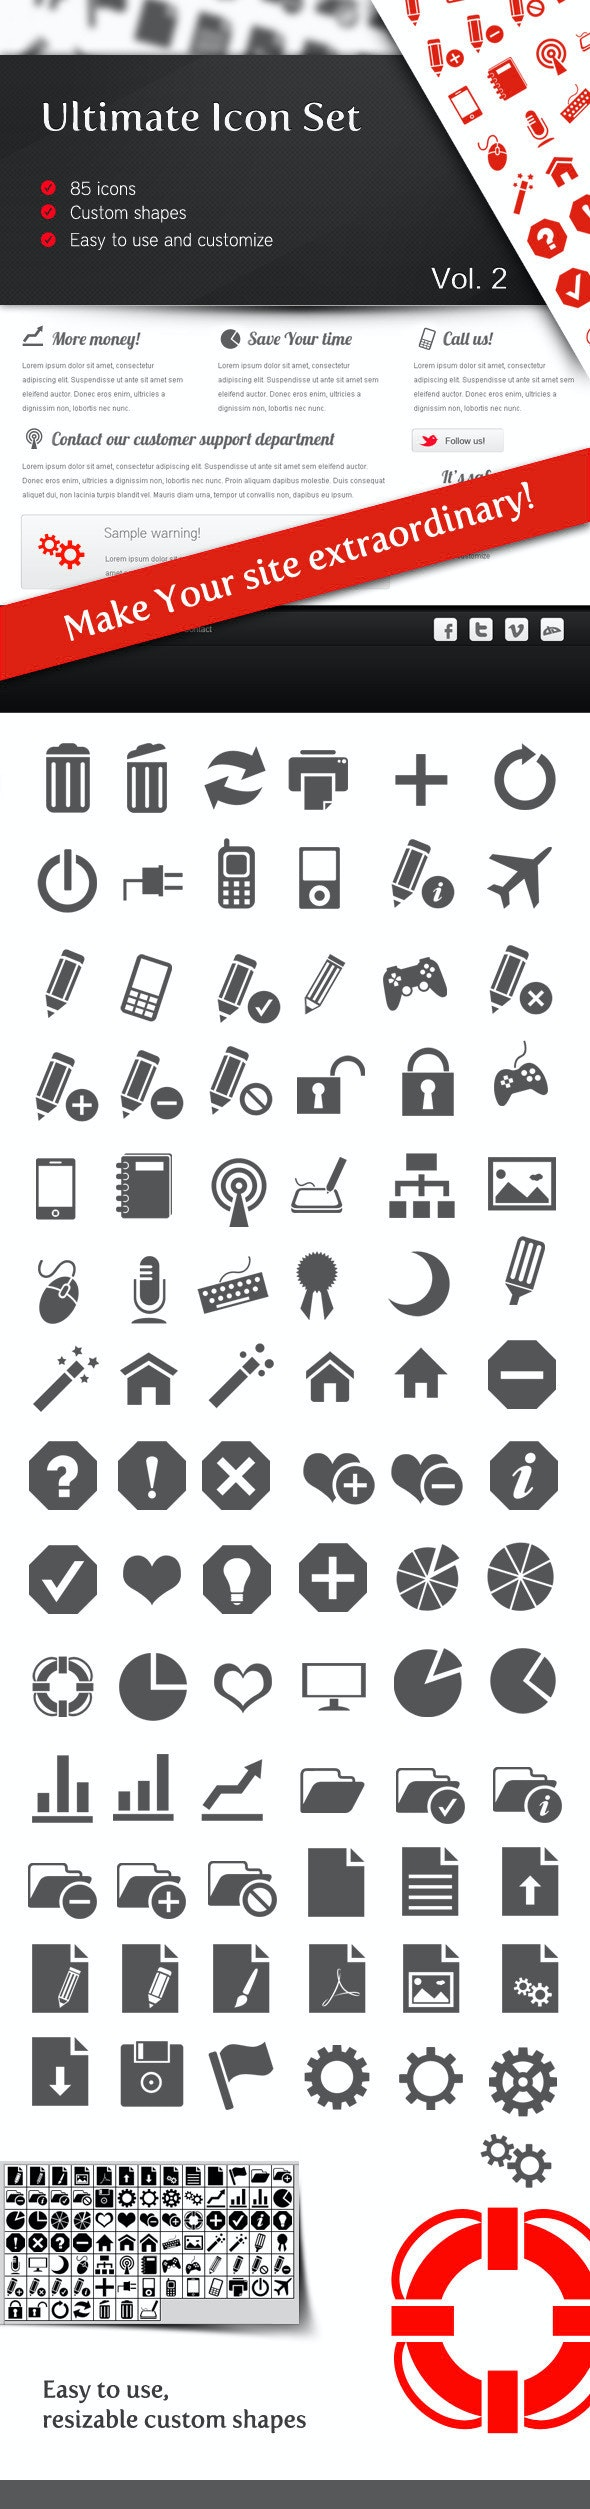 Ultimate Icon Set Vol 2 - Symbols Shapes